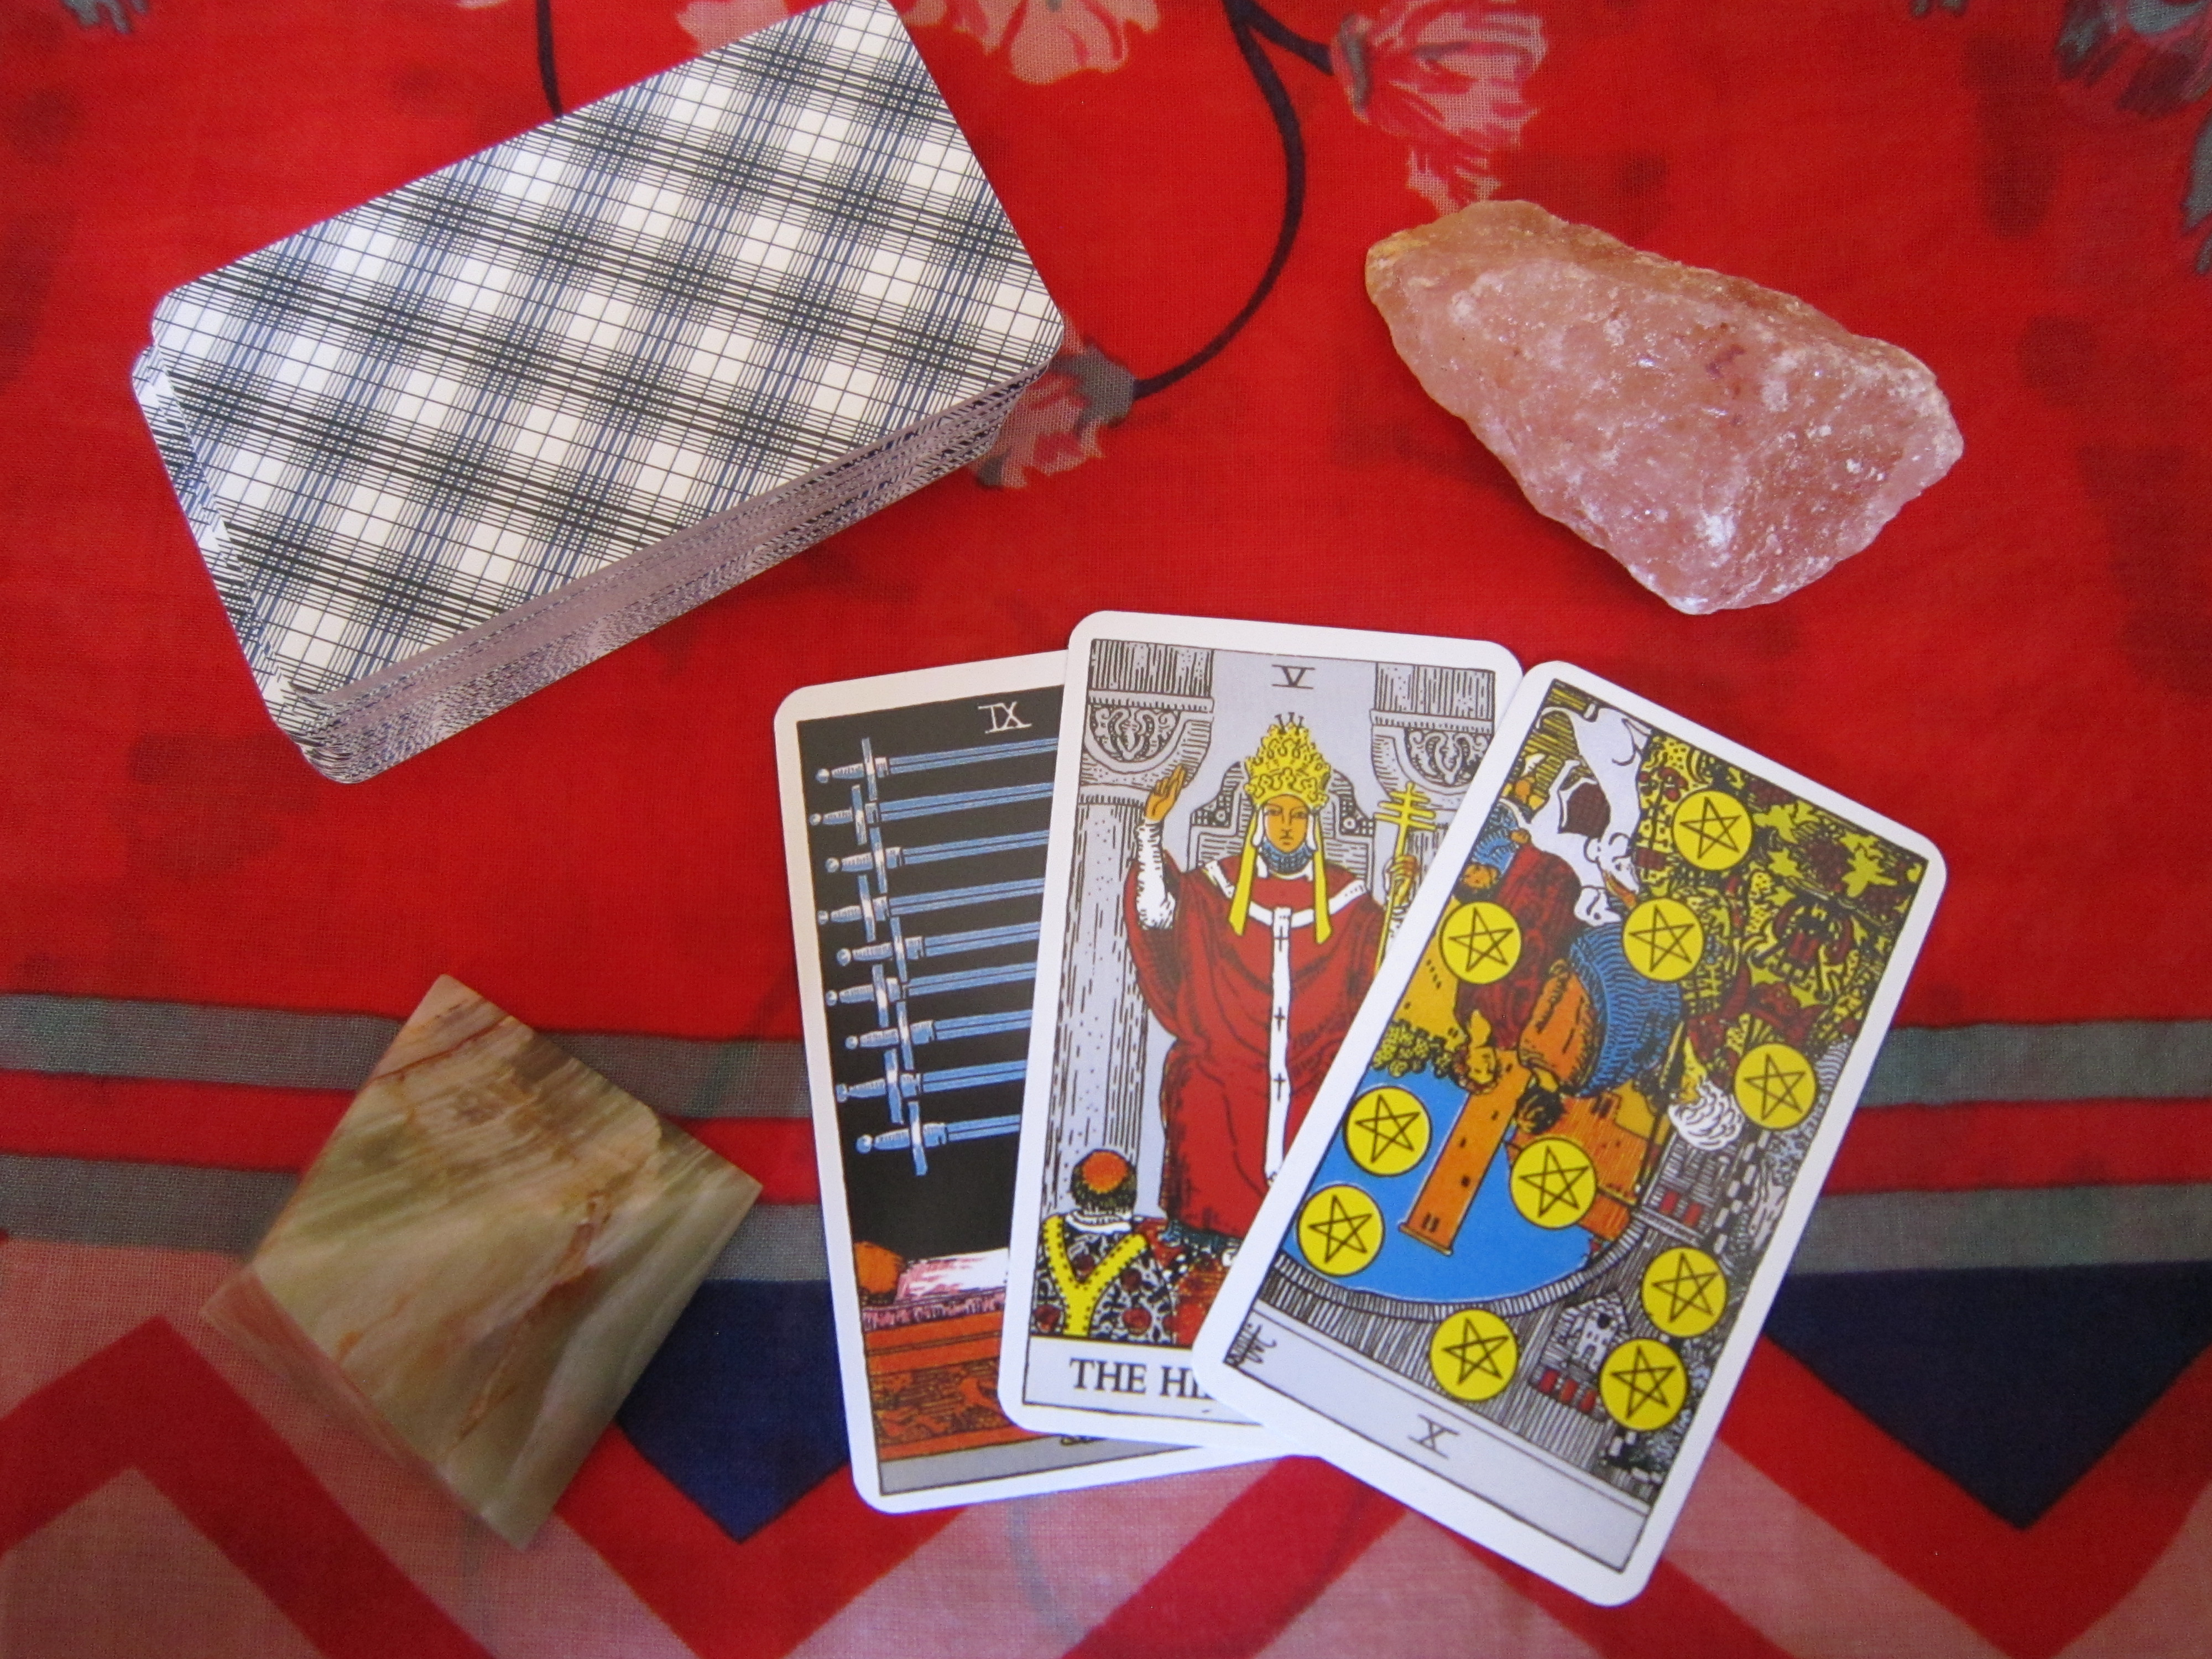 Tarot card reading with 3 cards which show the 9 of swords, the heirophant, and the ten of pentacles.